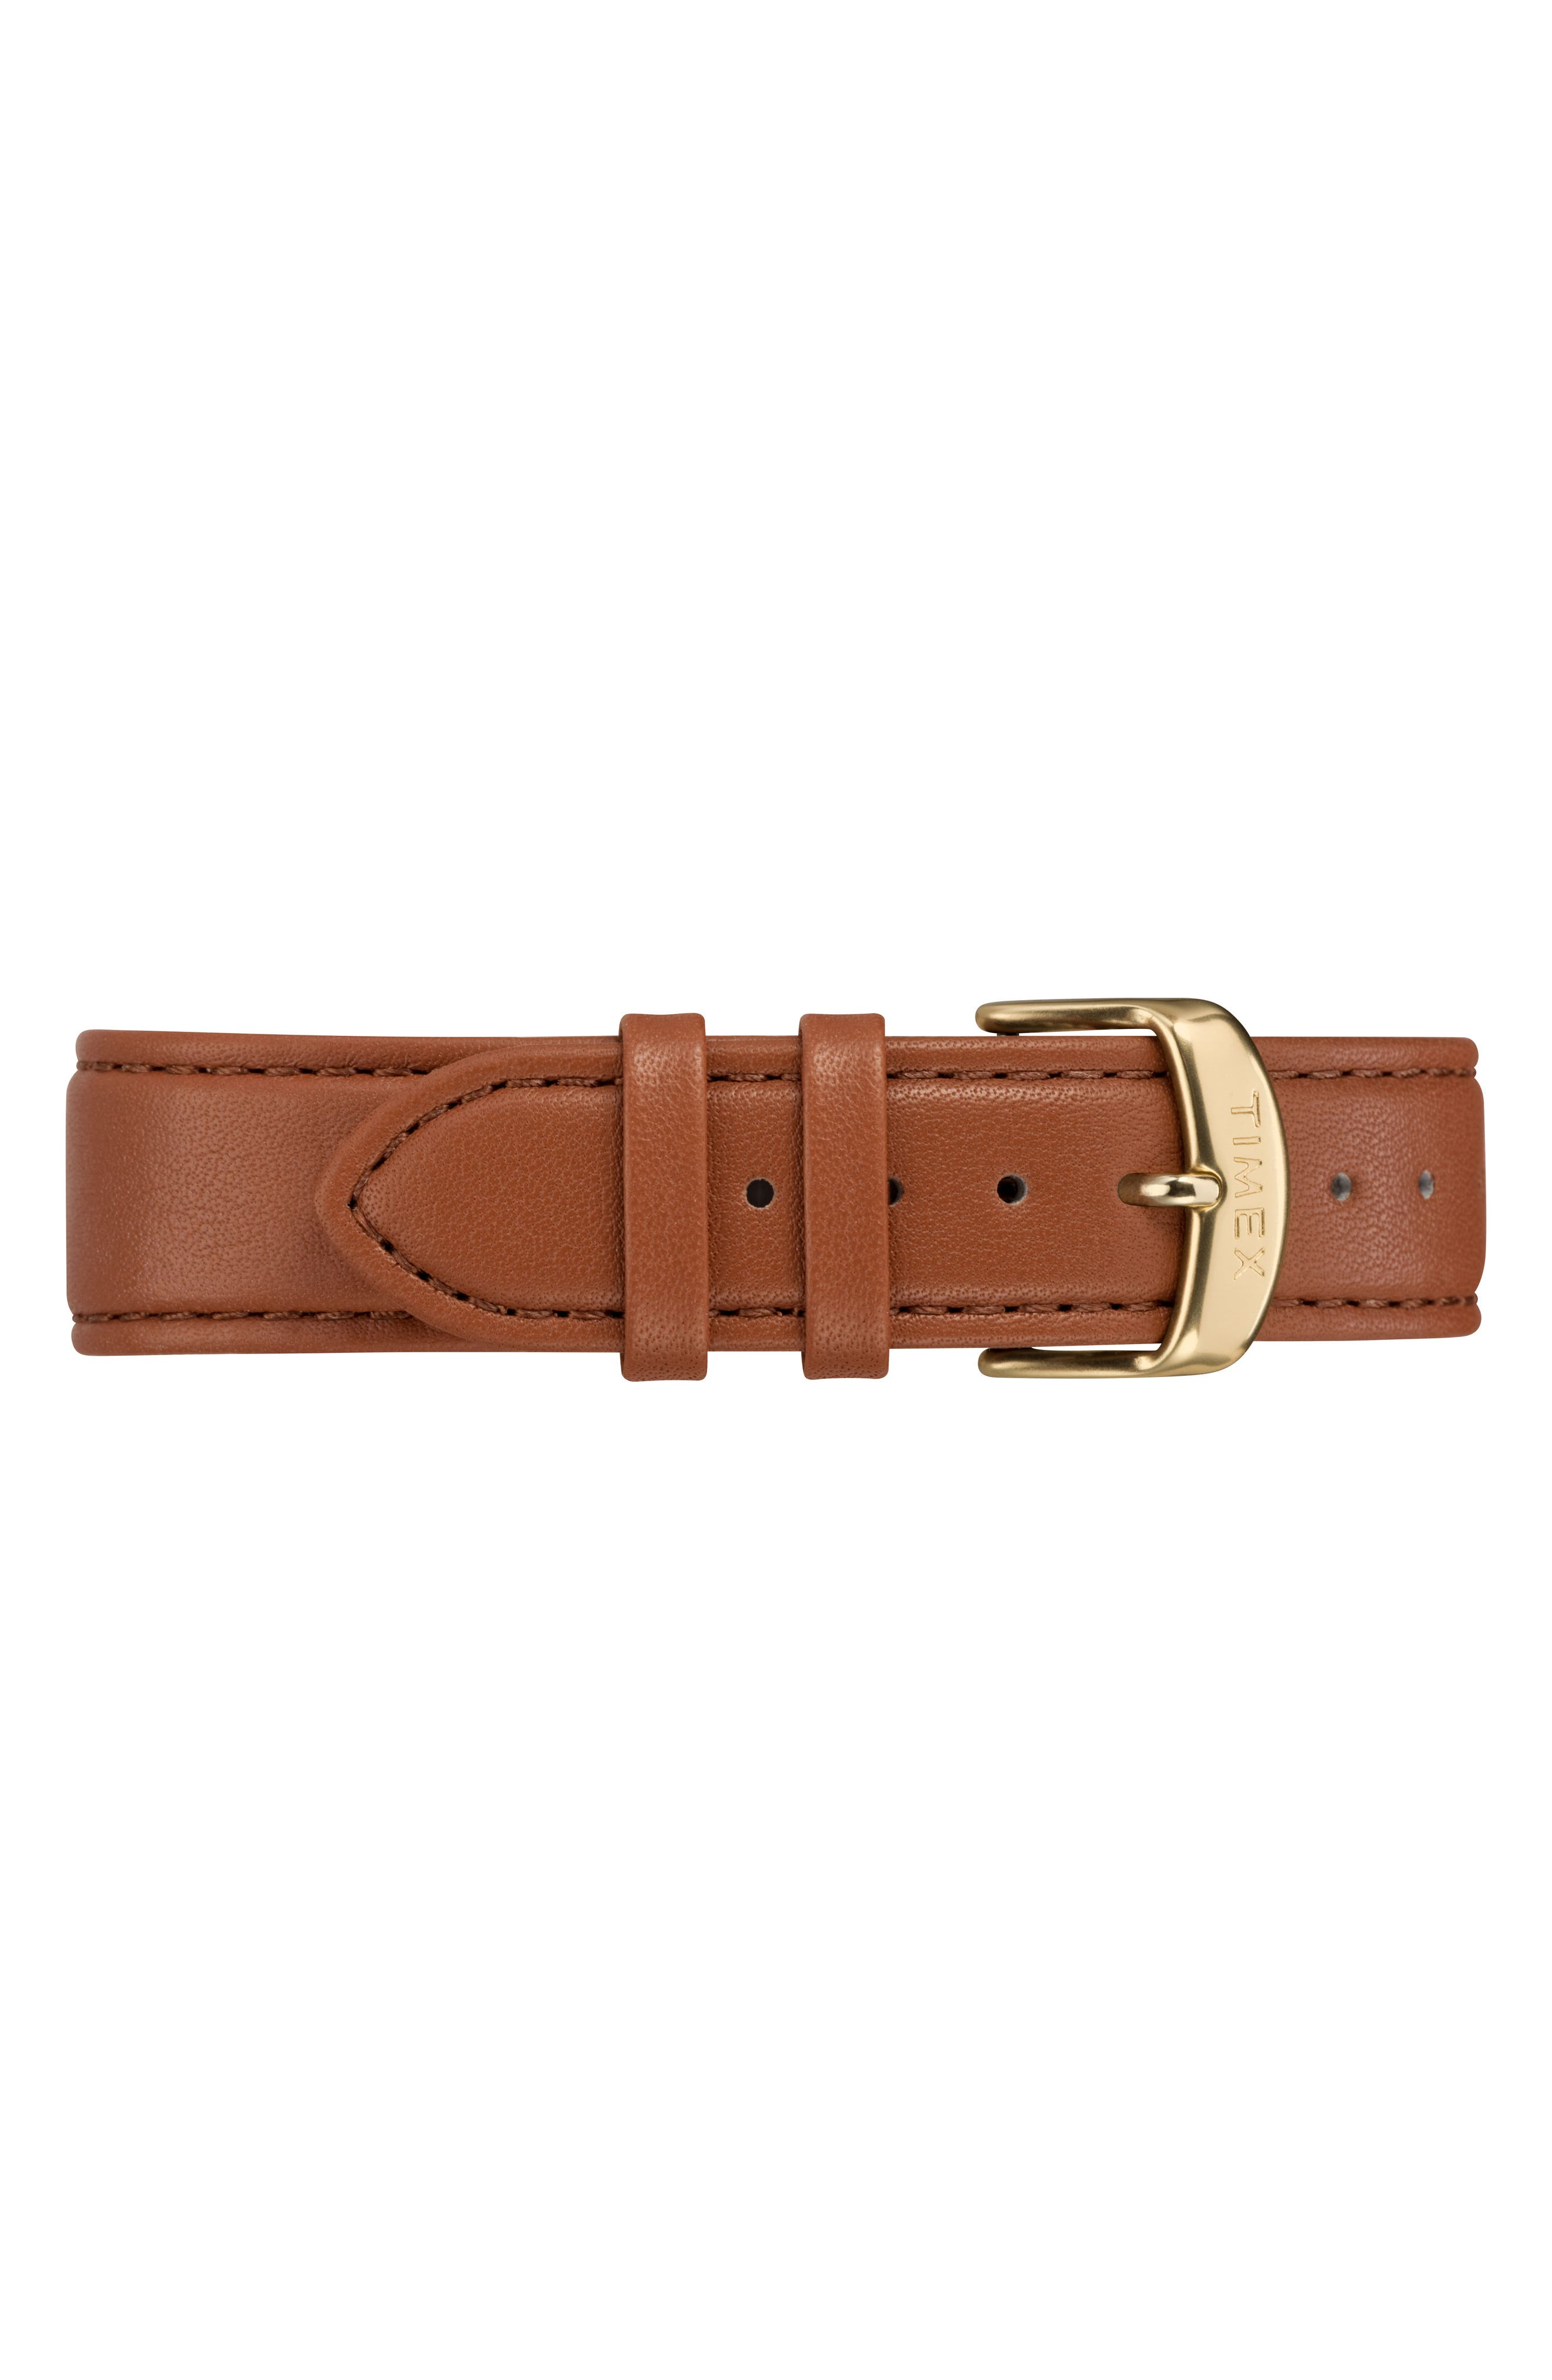 Fairfield Leather Strap Watch, 41mm,                             Alternate thumbnail 2, color,                             Tan/ Cream/ Gold